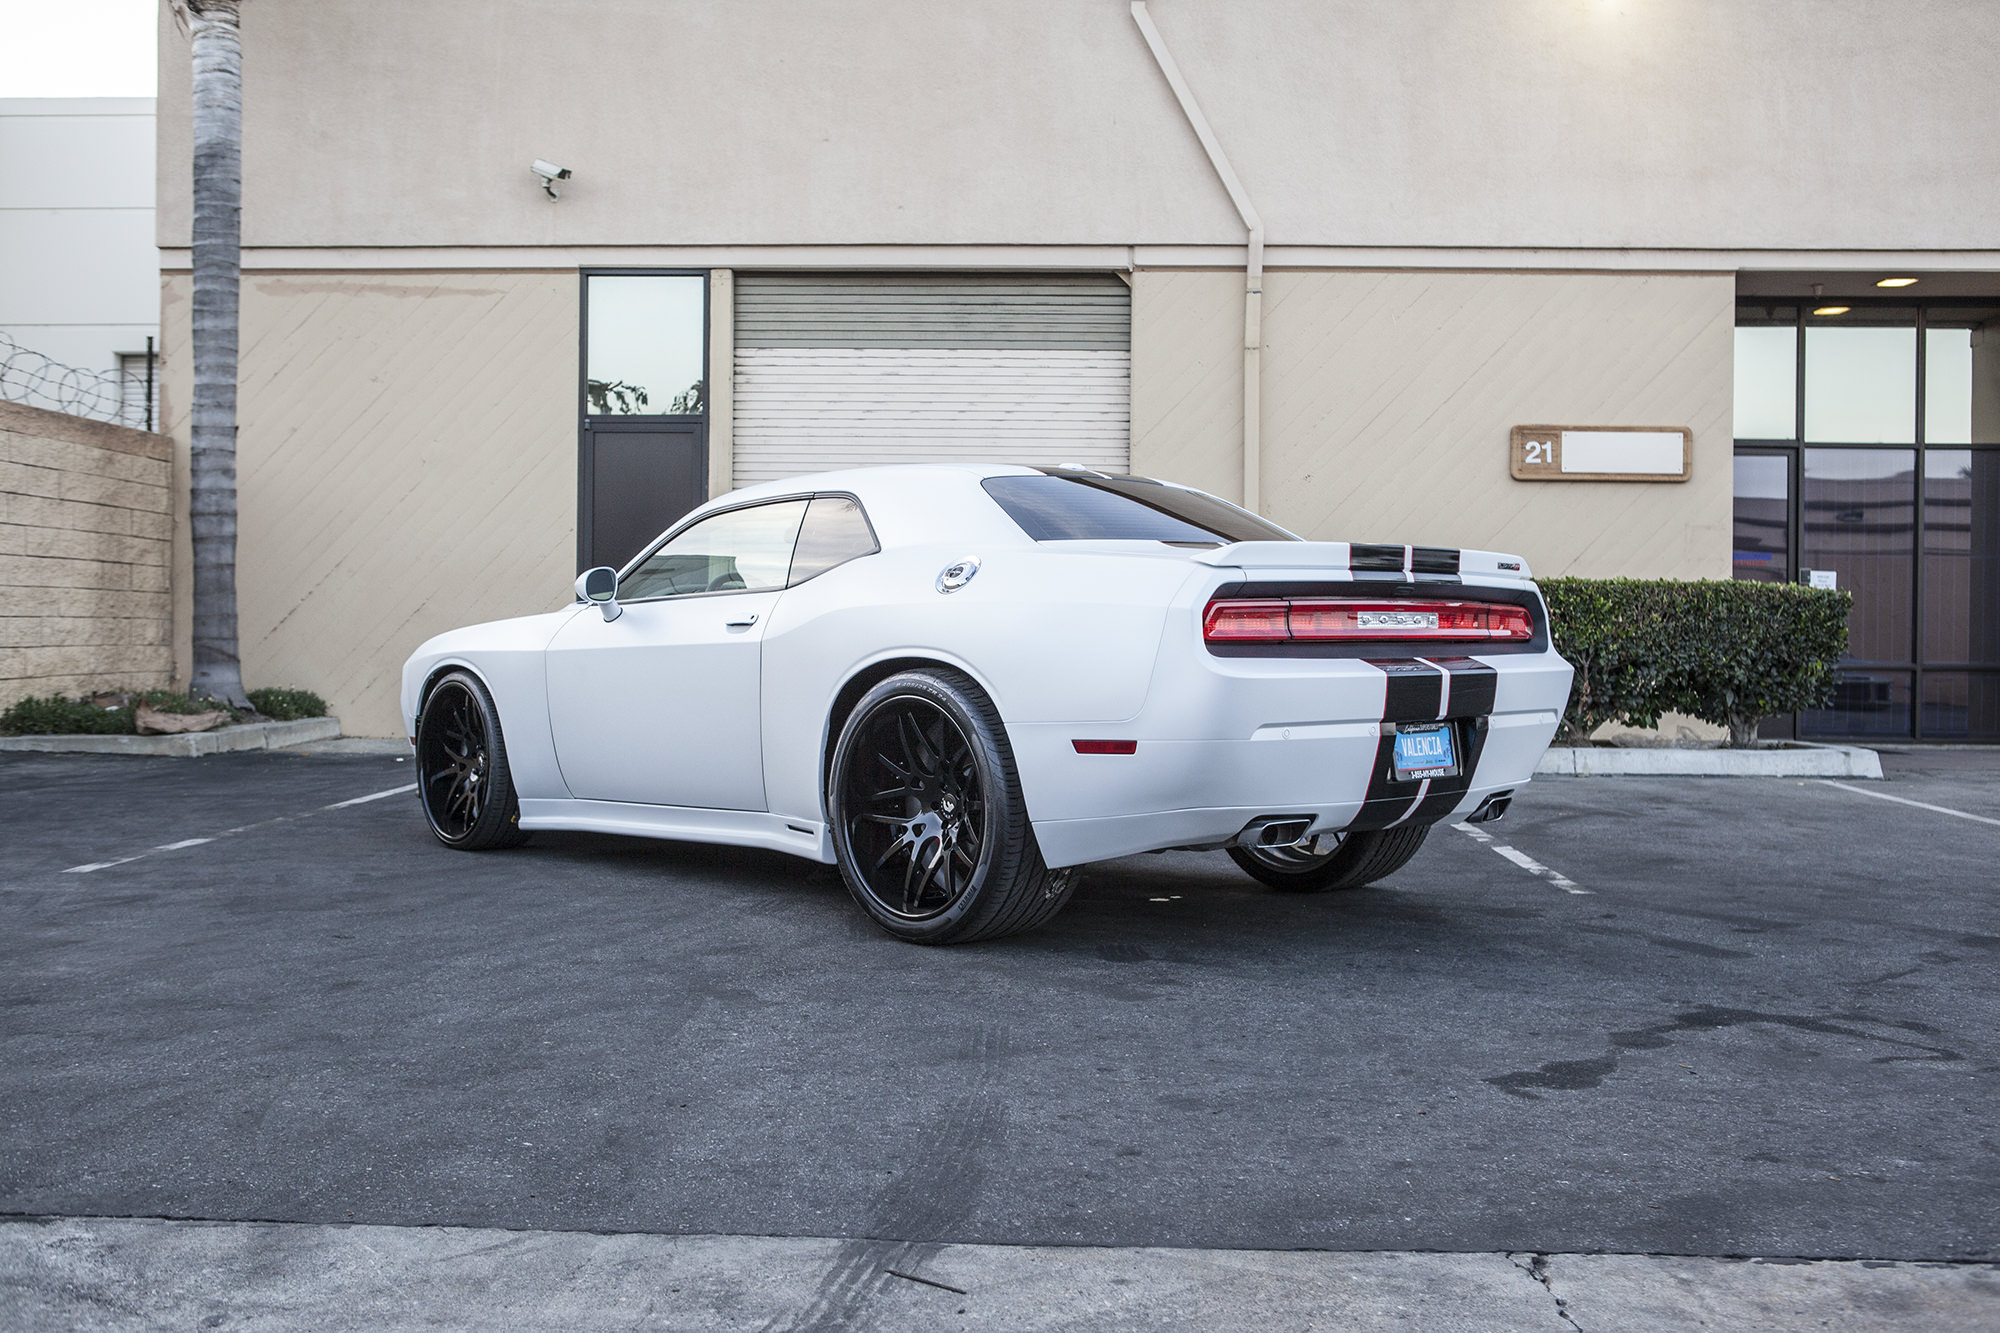 Dodge Challenger 24 Inch Rims >> DODGE CHALLENGER ON 26 INCH FORGIATOS WITH A WIDE BODY KIT - Big Rims - Custom Wheels